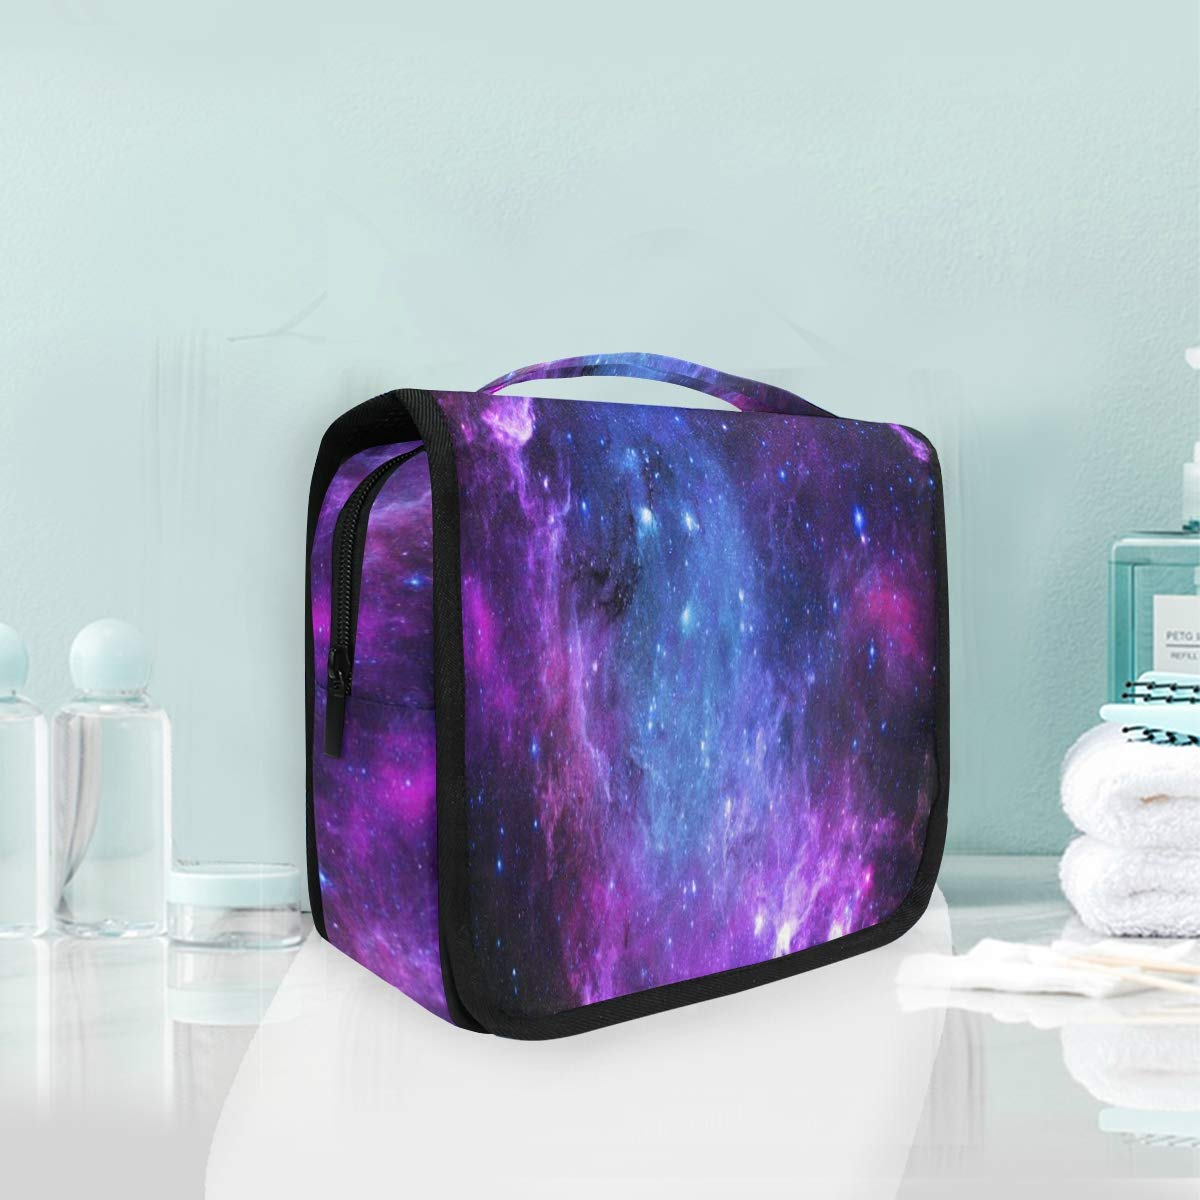 SLHFPX Travel Hanging Toiletry Bag Nebula Purple Galaxy Cosmetic, Makeup and Toiletries Organizer | Compact Bathroom Storage | Home, Gym, Airplane, Hotel, Car Use